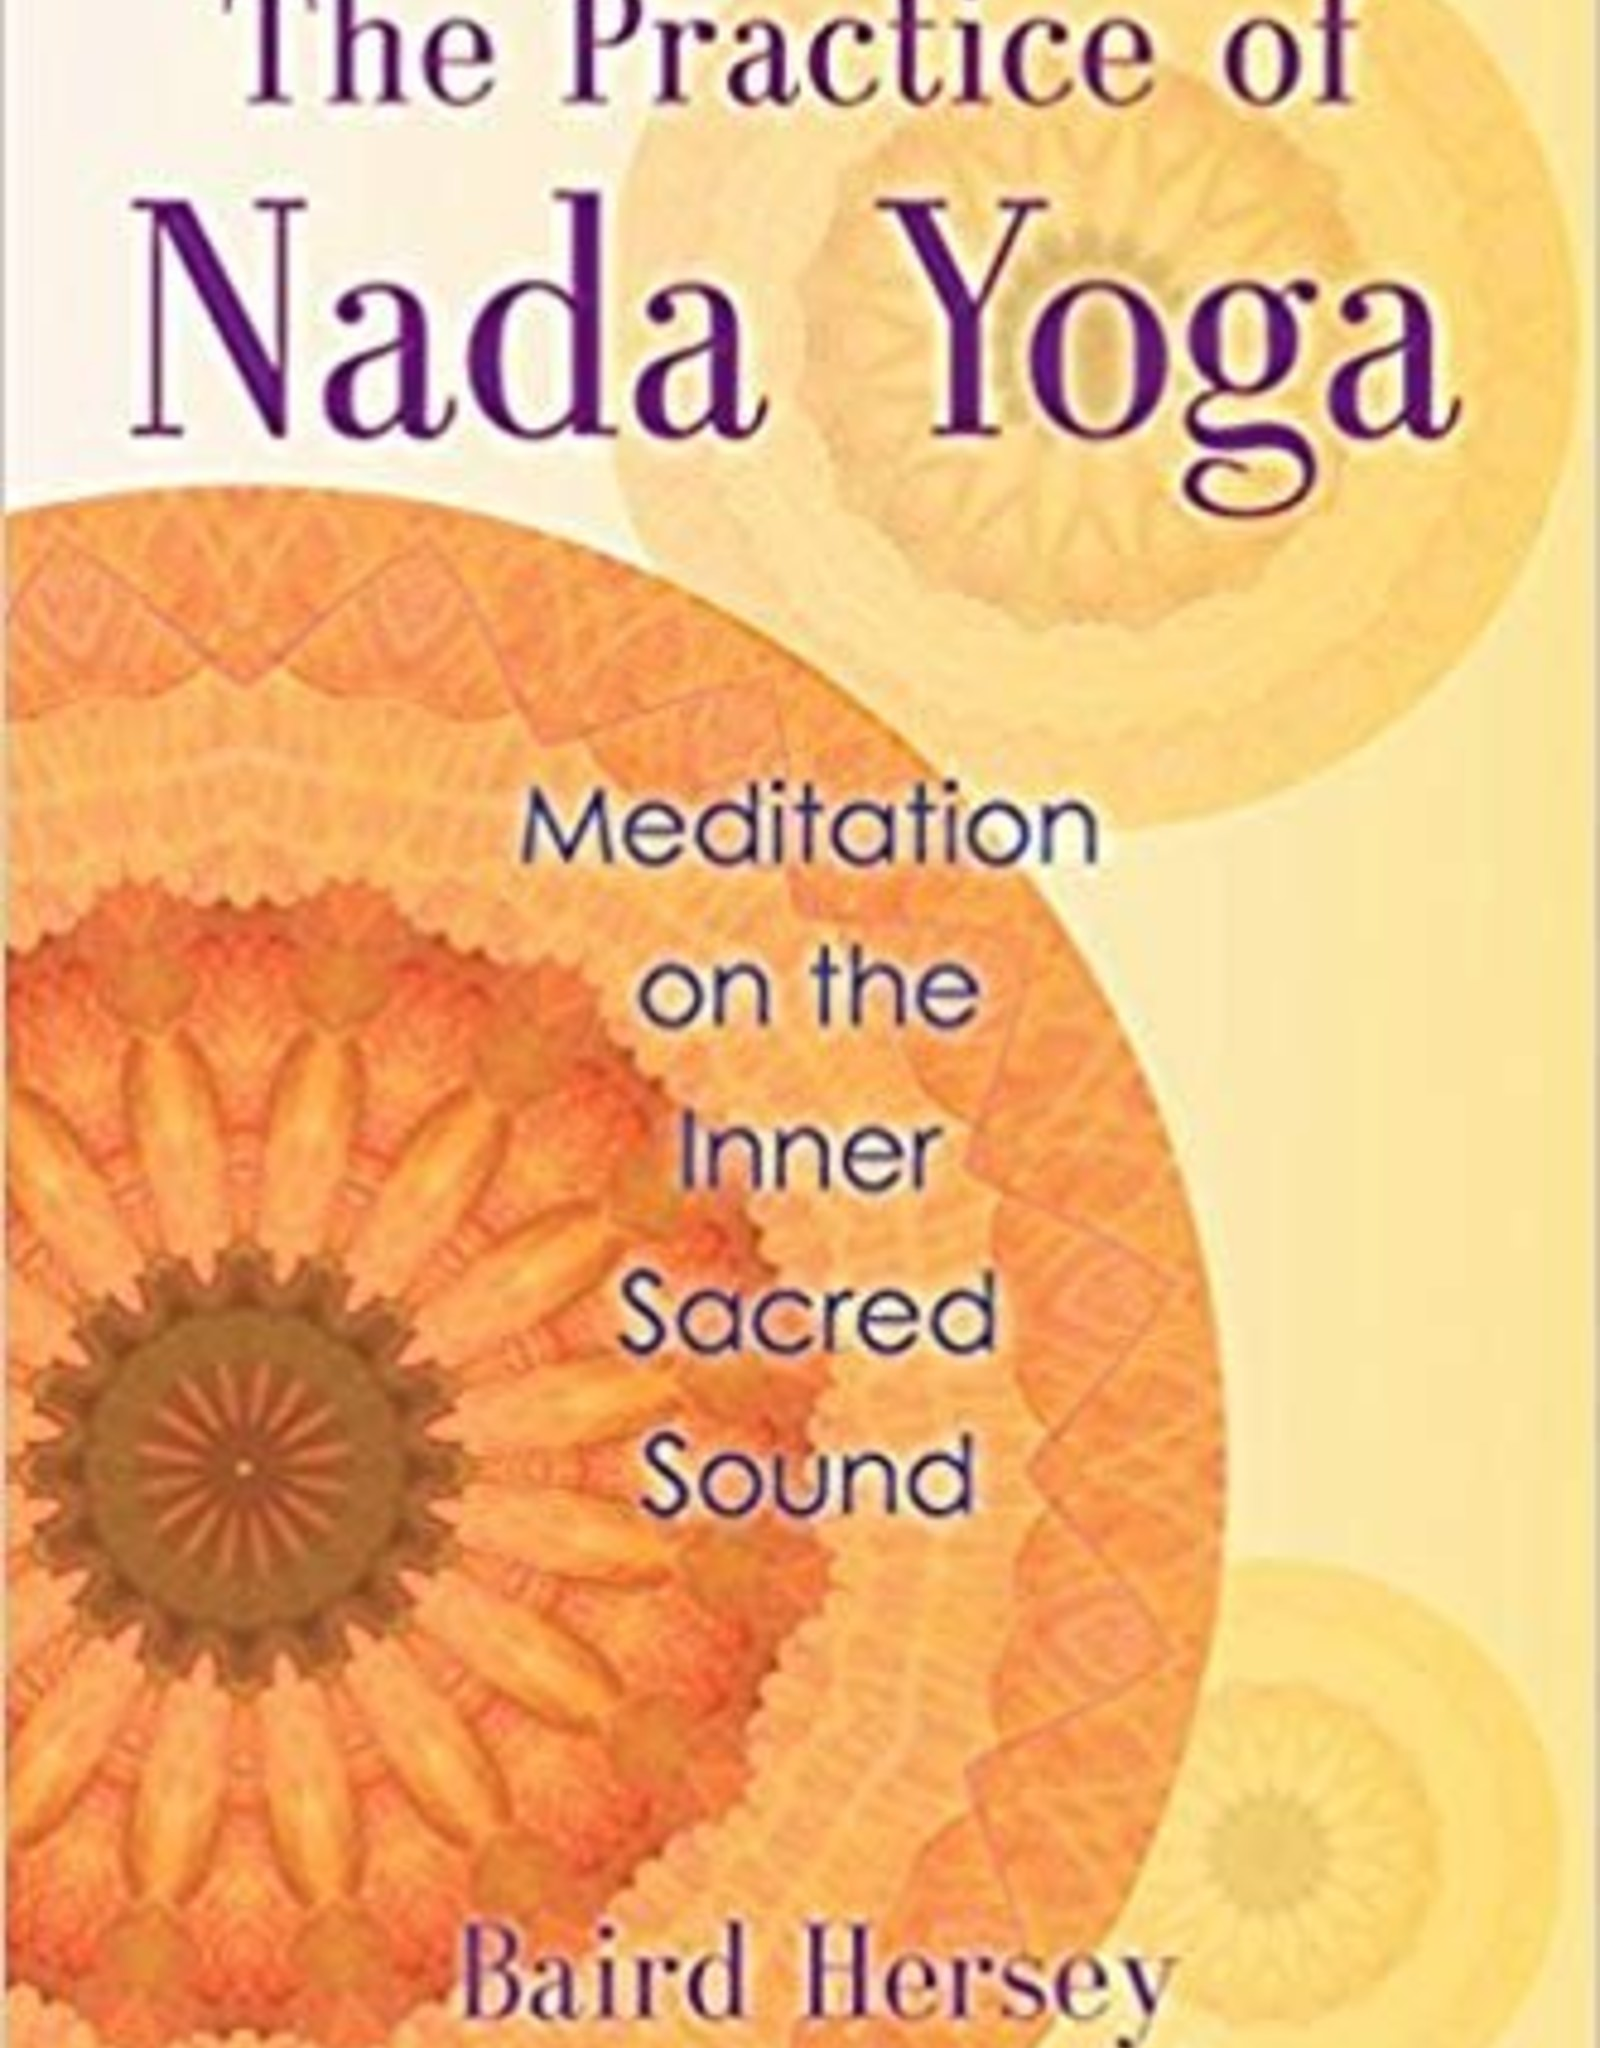 Integral Yoga Distribution The Practice of Nada Yoga: Meditation on the Inner Sacred Sound